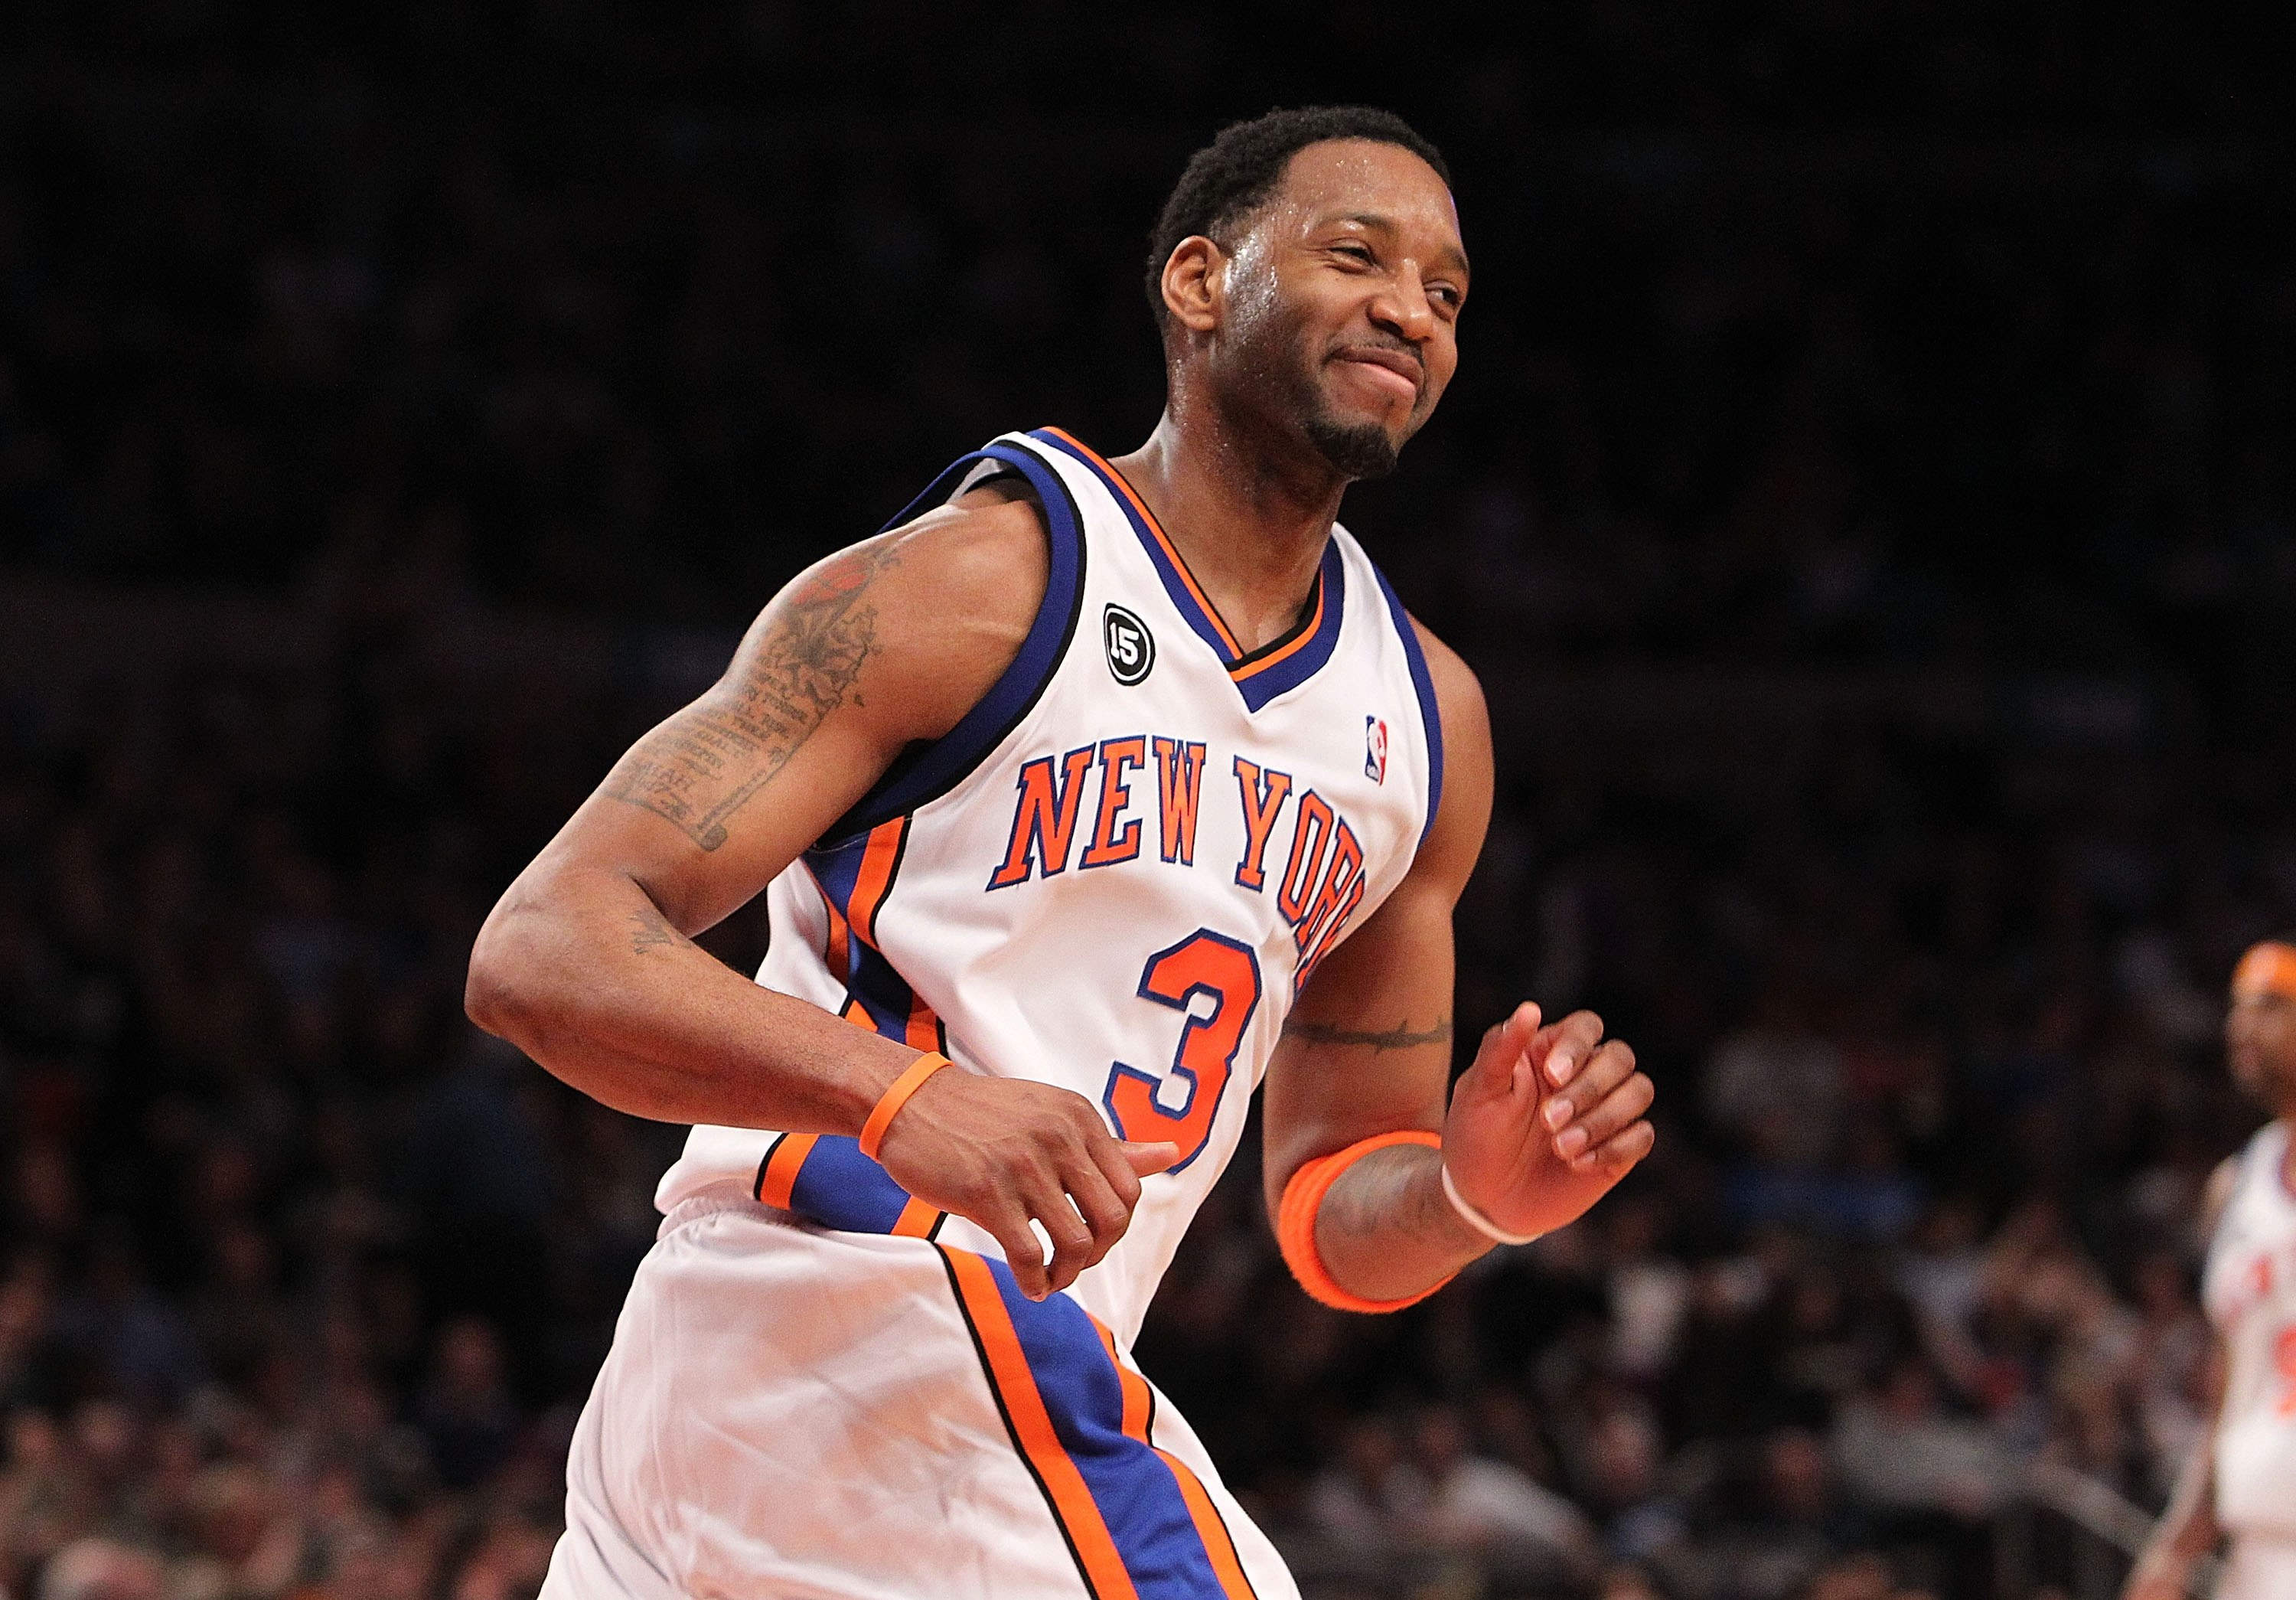 NEW YORK - FEBRUARY 20: Tracy McGrady #3 of the New York Knicks smiles after making a basket against the Oklahoma City Thunder at Madison Square Garden on February 20, 2010 in New York, New York. NOTE TO USER: User expressly acknowledges and agrees that, by downloading and or using this photograph, User is consenting to the terms and conditions of the Getty Images License Agreement.